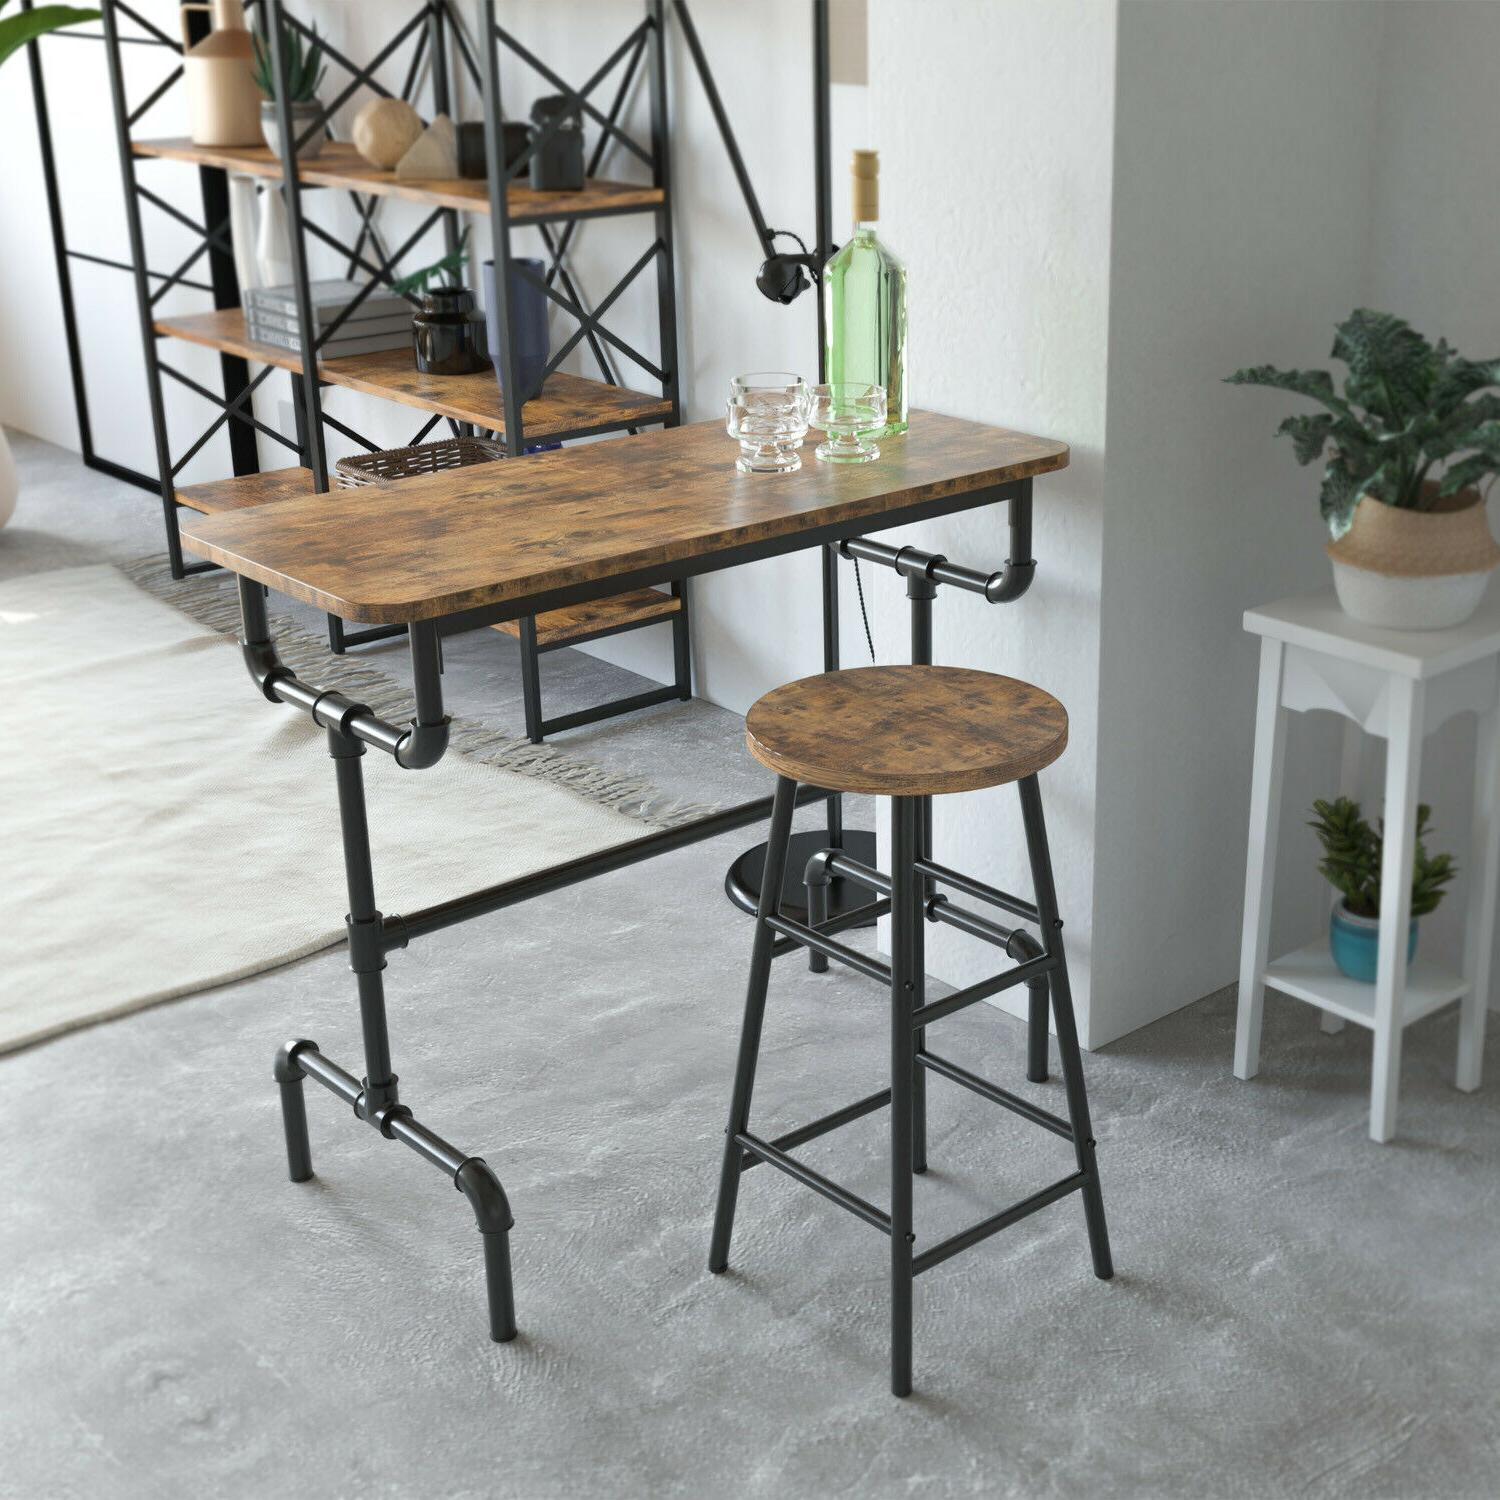 IRONCK Industrial Console Table, Entryway Table with Iron Pi